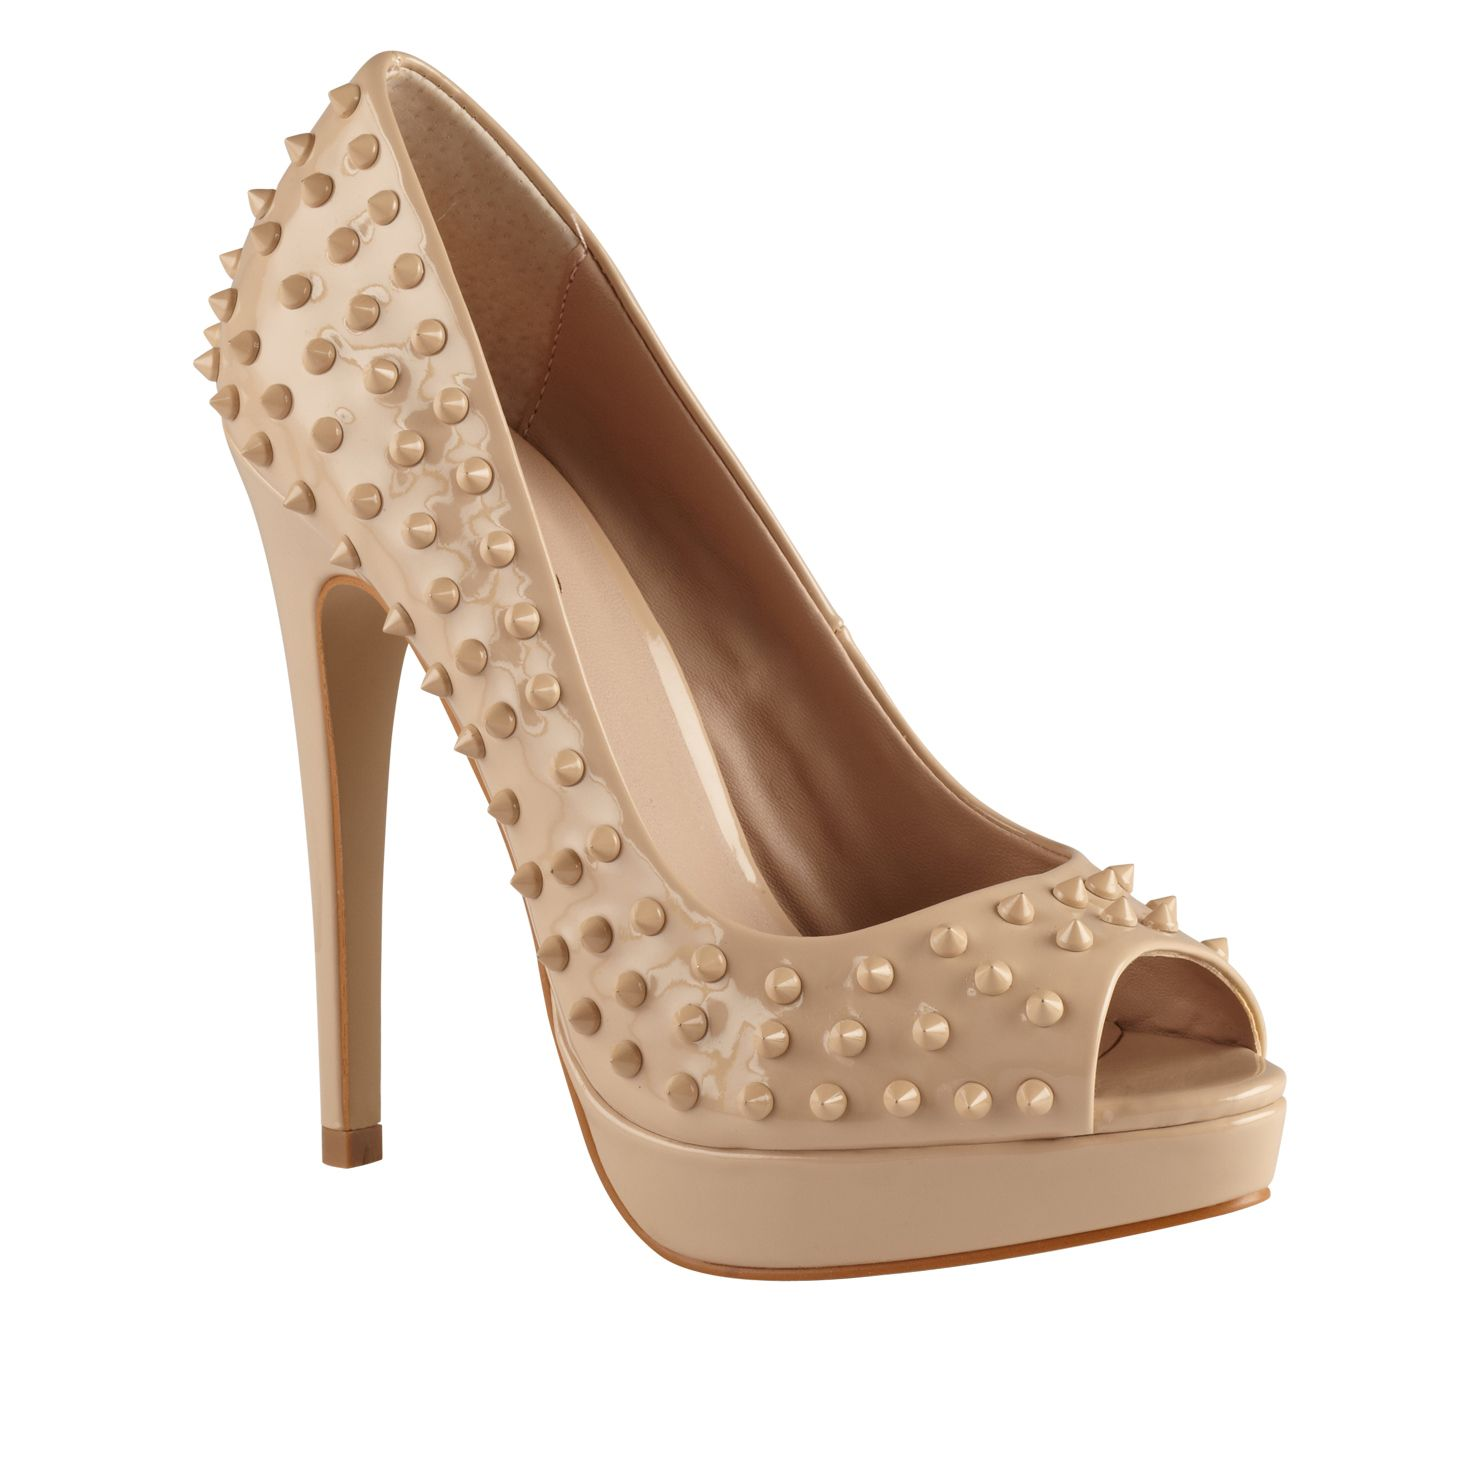 Petrona Peep Toe Studded Court Shoes